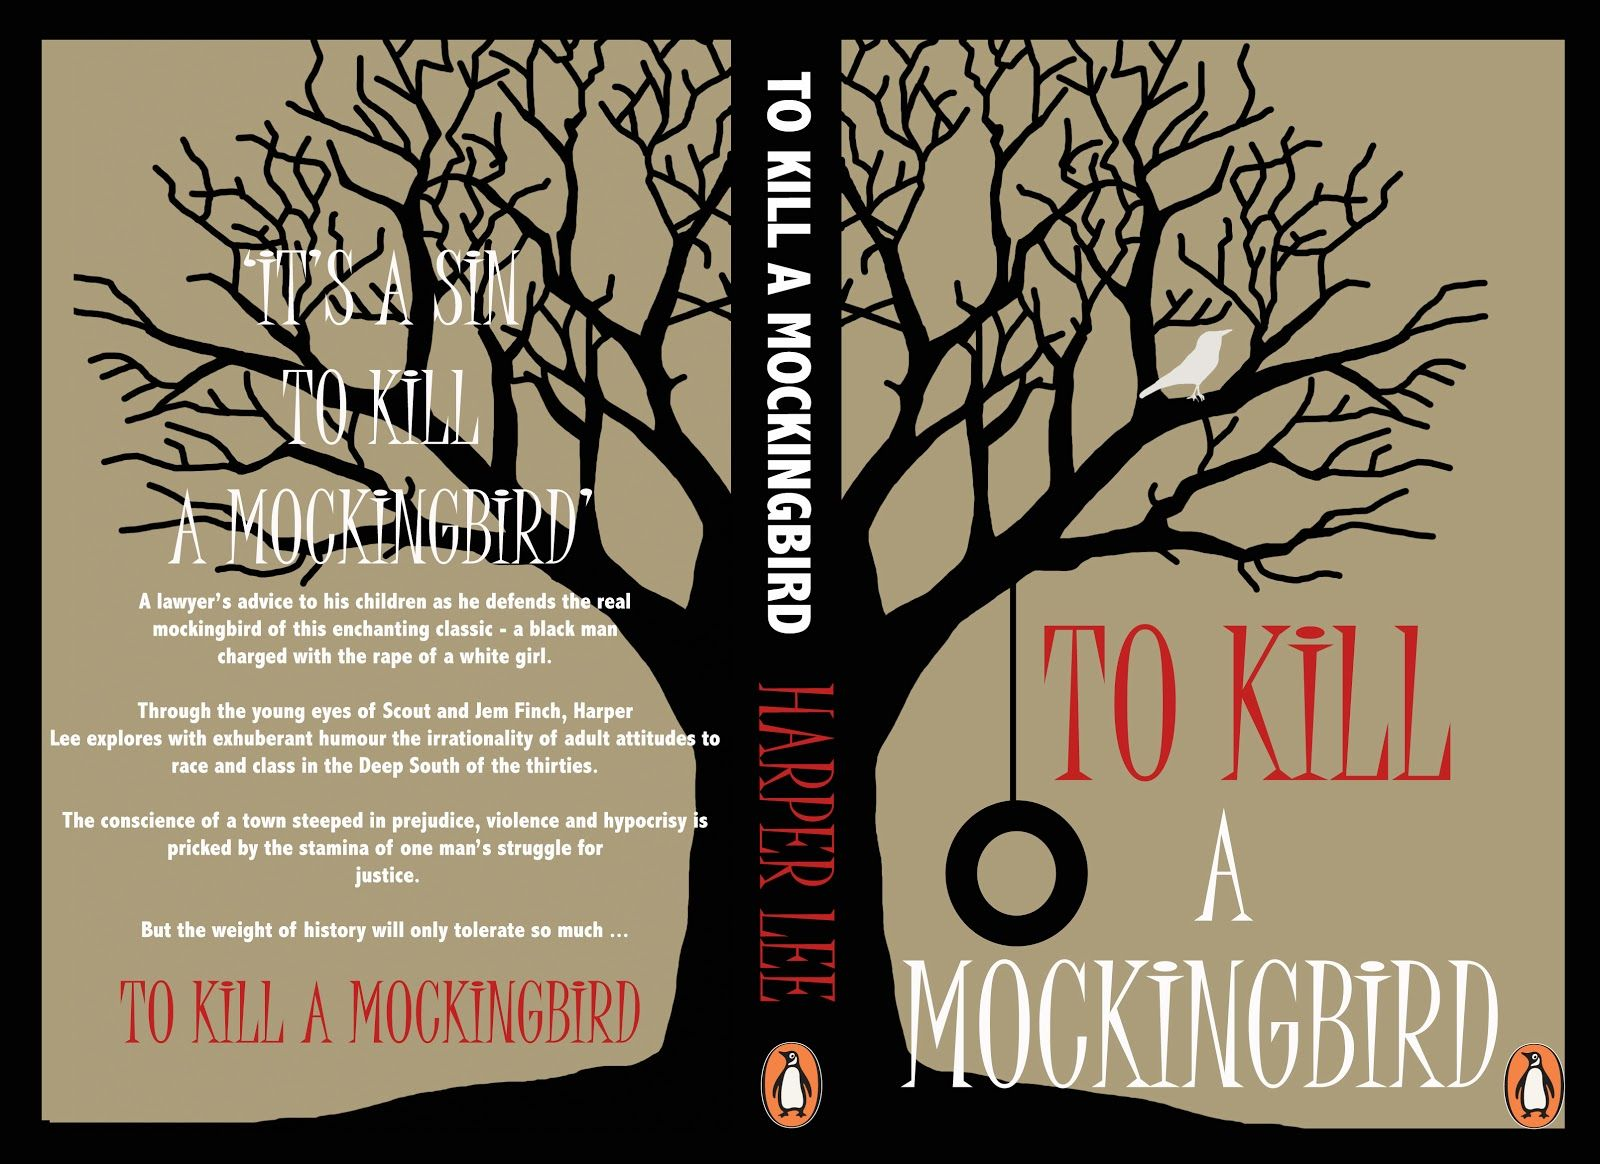 to kill a mockingbird book report  to kill a mockingbird summary book report profile thoughtco com